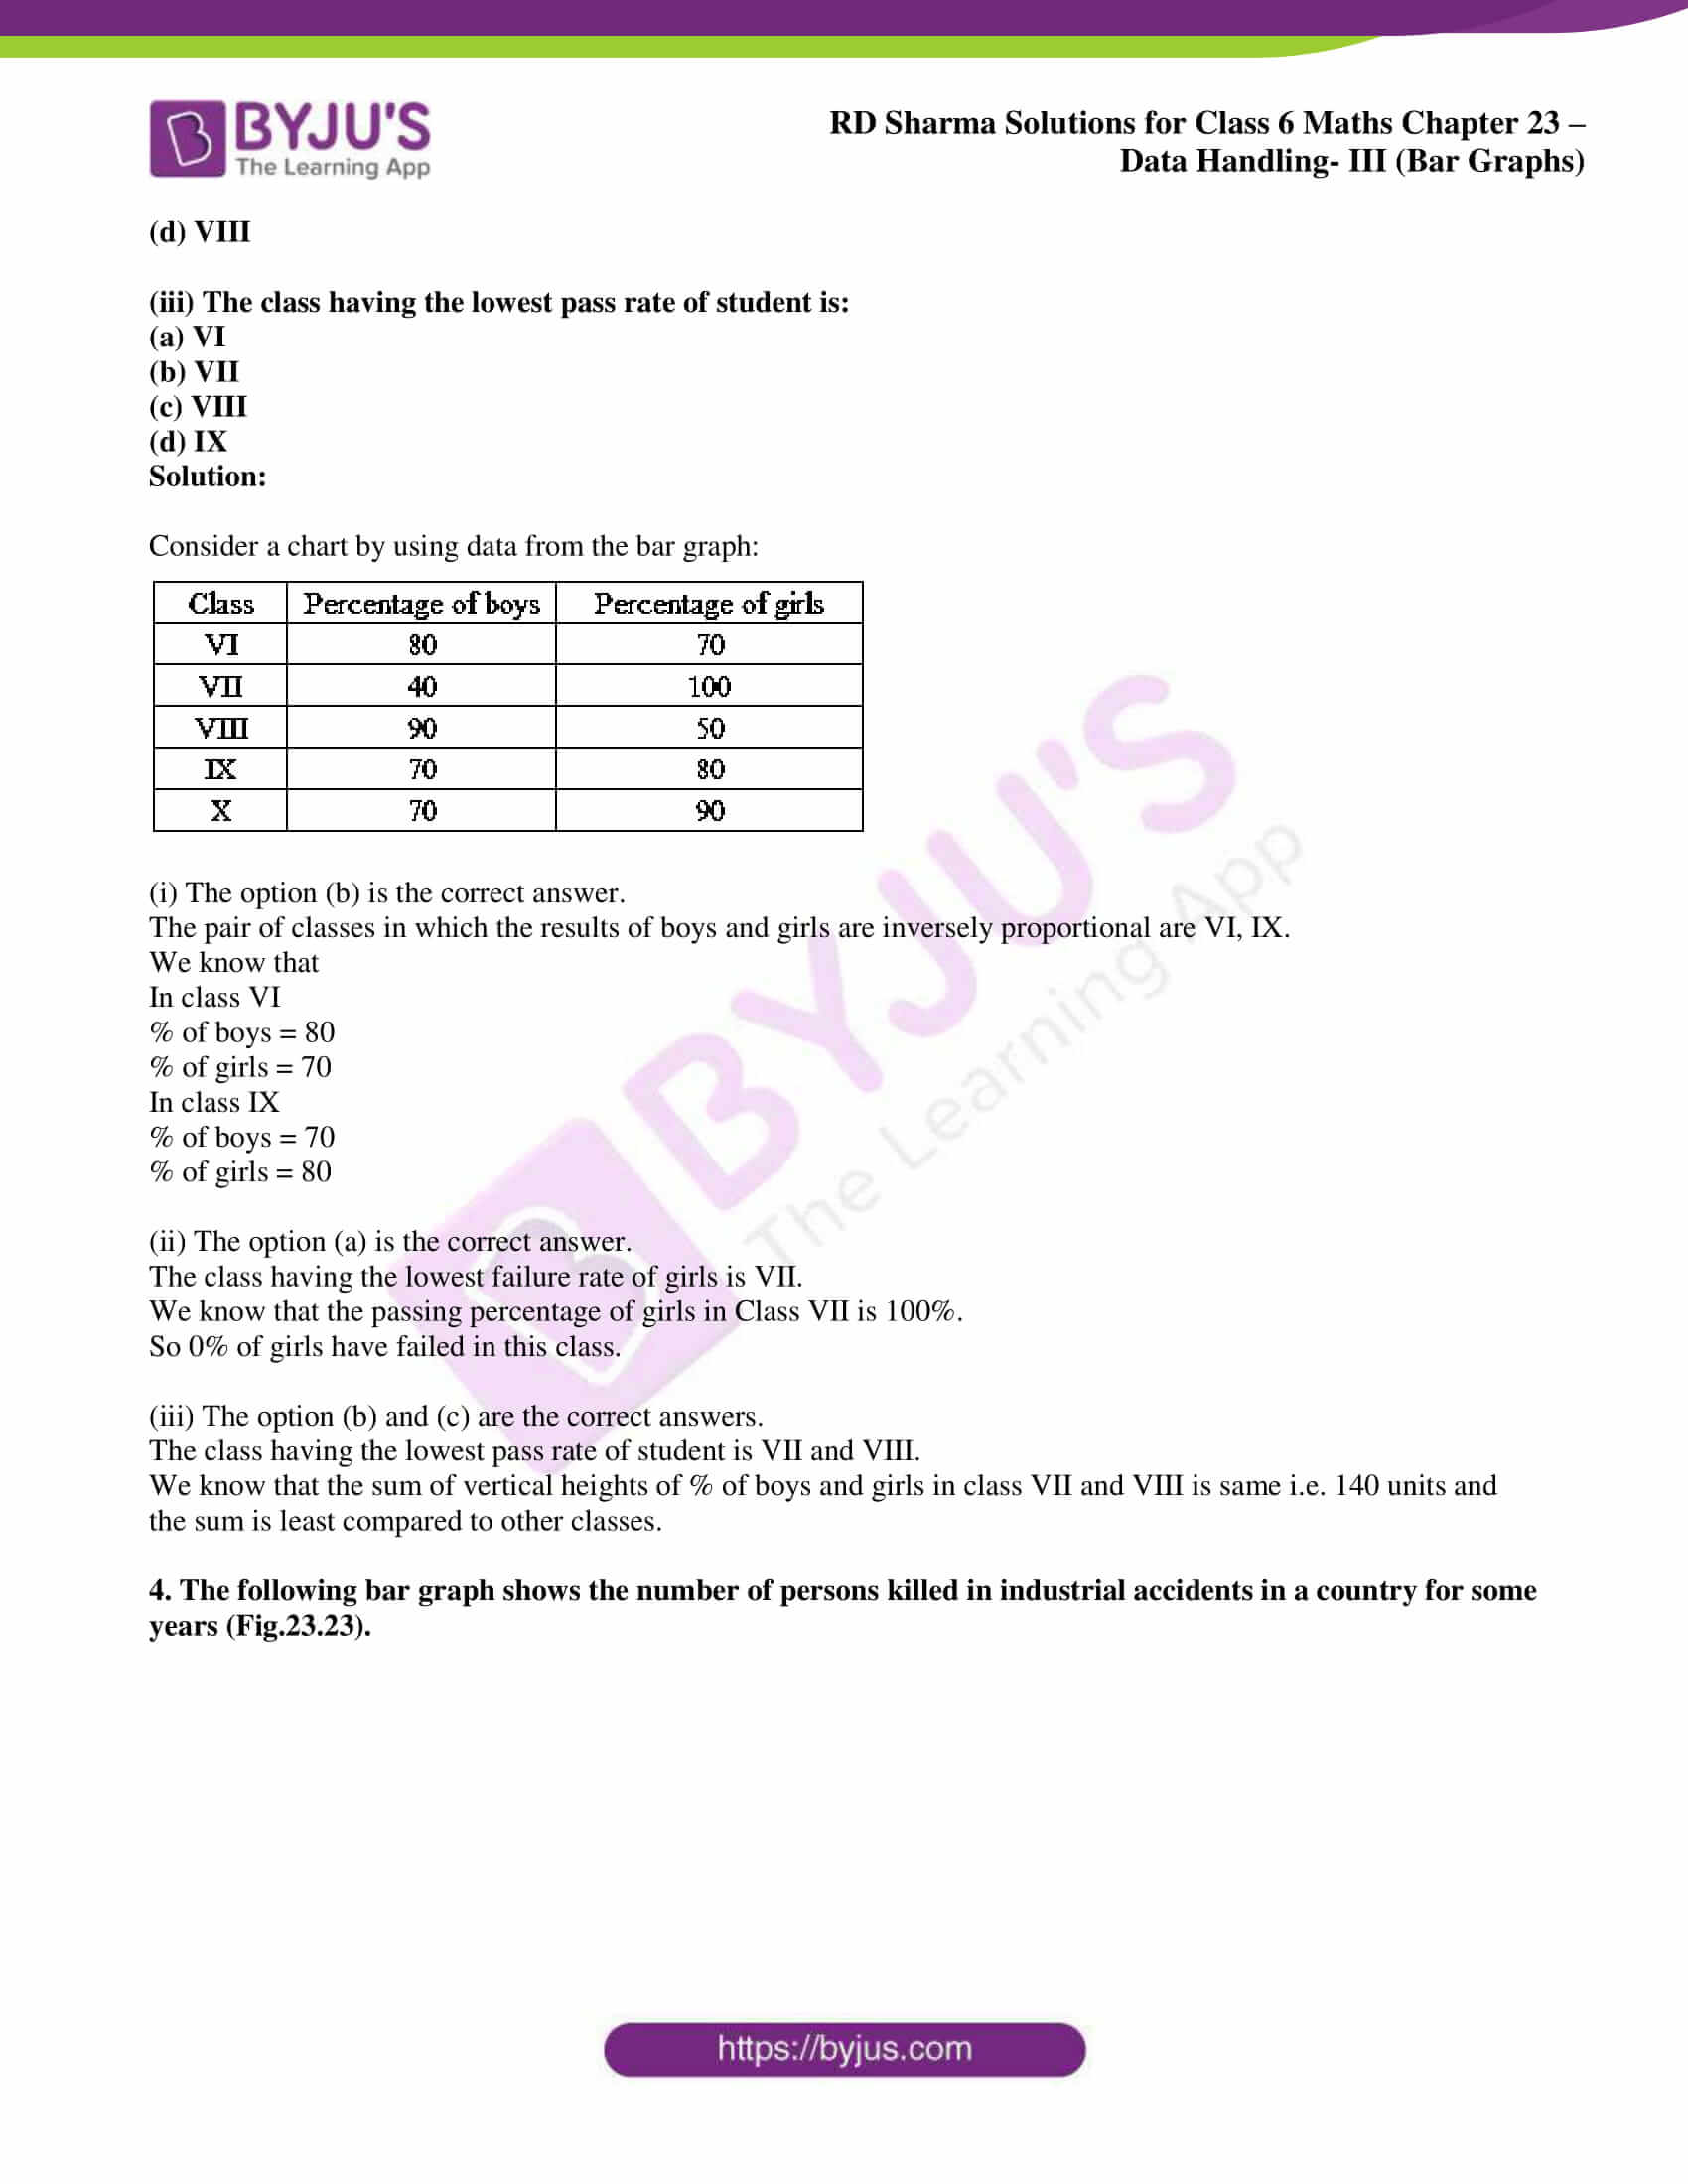 rd sharma solutions nov2020 class 6 maths chapter 23 exercise 2 03